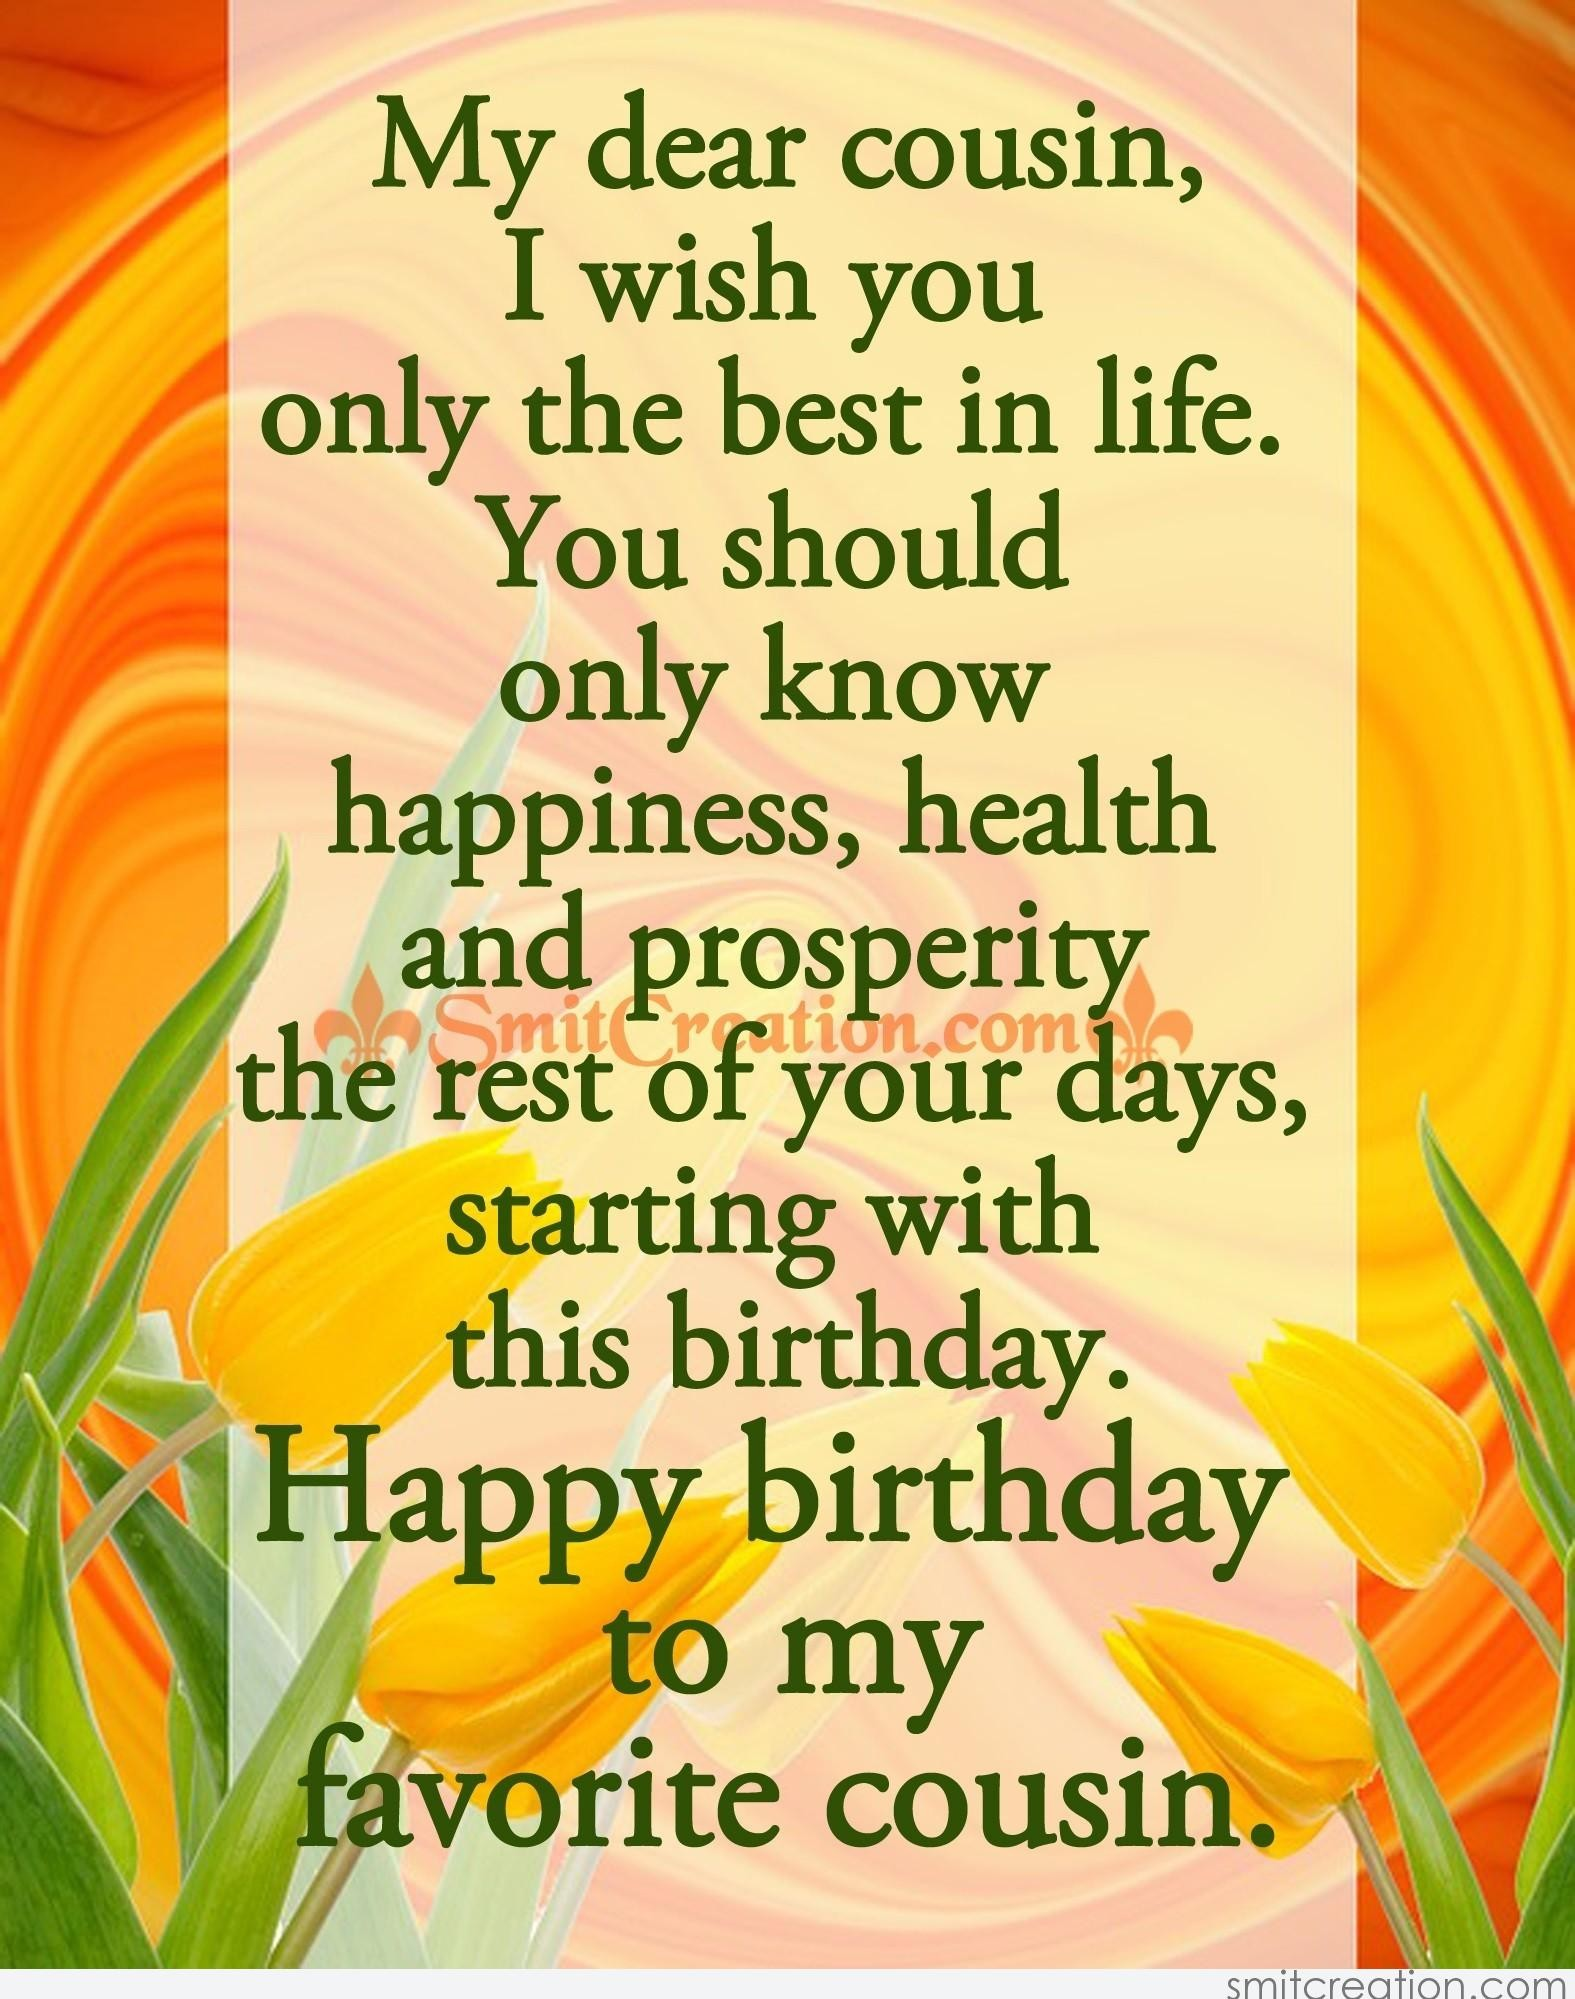 happy birthday to me message quotes ; happy-birthday-to-my-cousin-quotes-unique-dear-cousin-happy-birthday-message-inspiring-quotes-and-words-in-of-happy-birthday-to-my-cousin-quotes